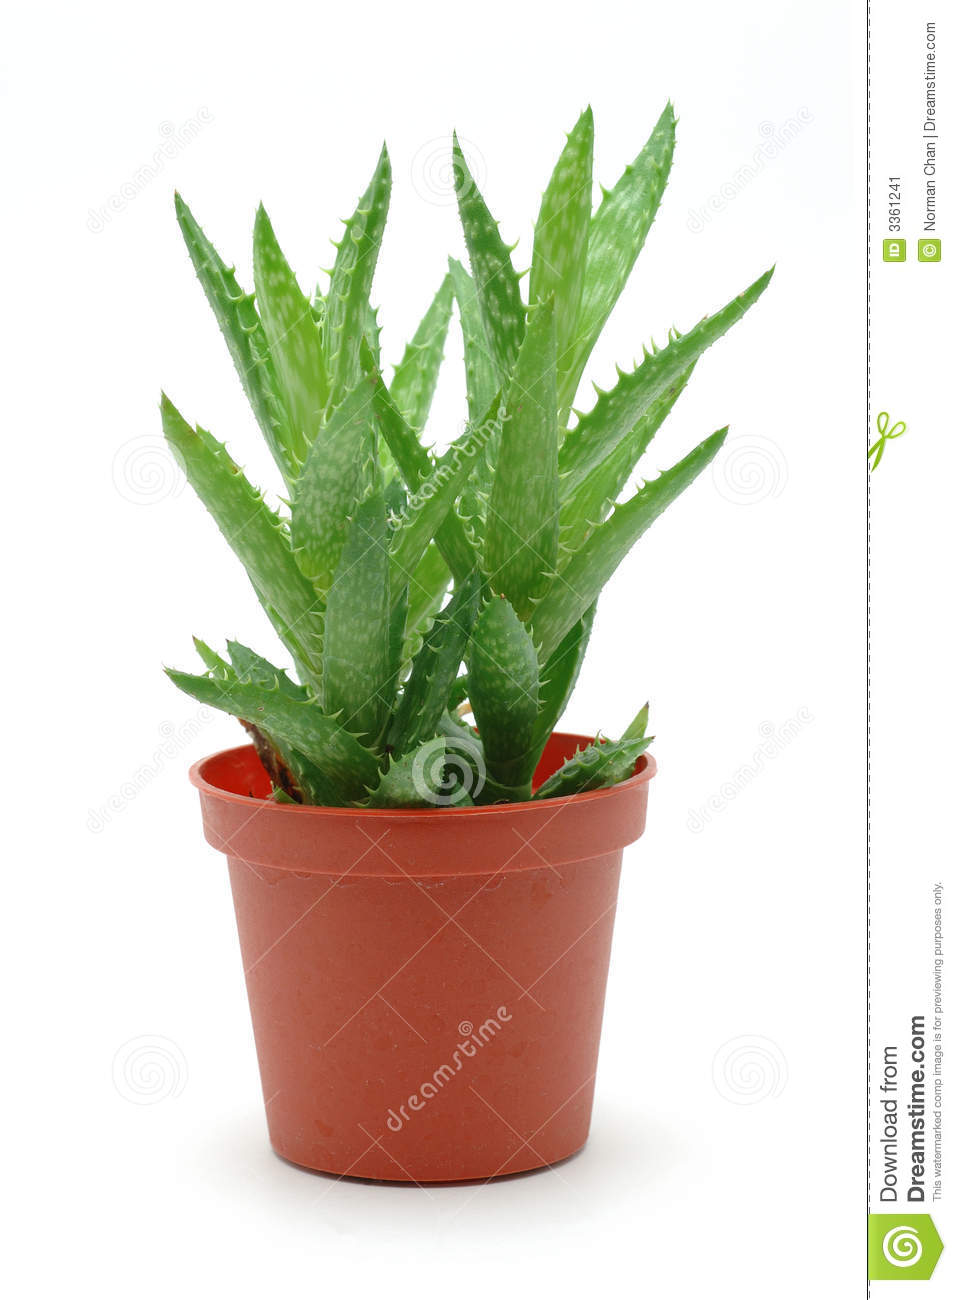 Aloe vera in pot stock image image of grow closeup stem 3361241 - Aloe vera en pot ...